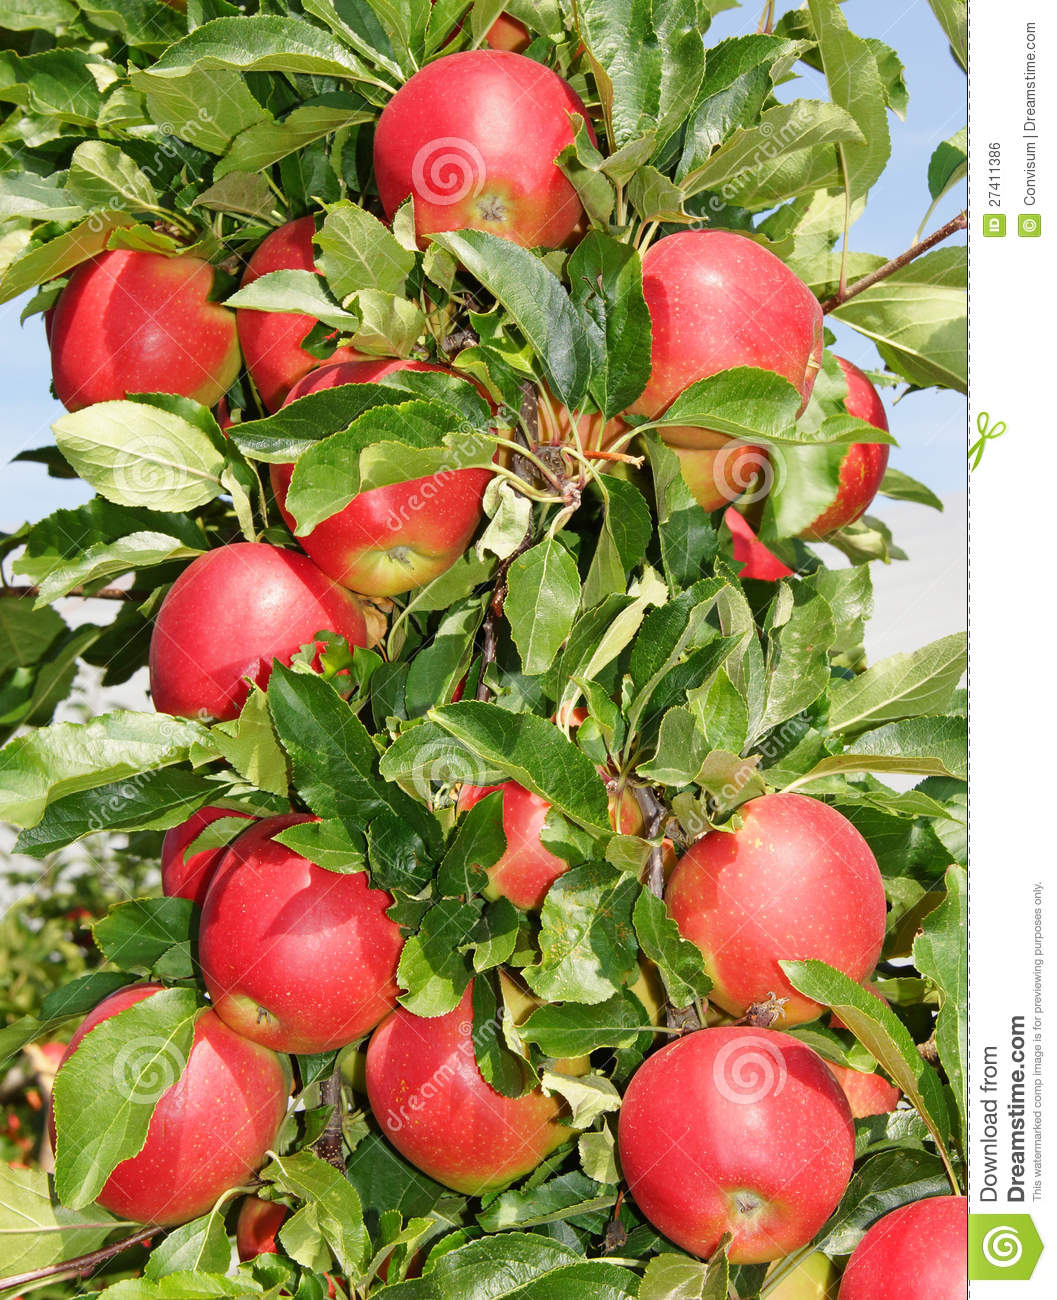 Red Apples On Tree Royalty Free Stock Image - Image: 27411386